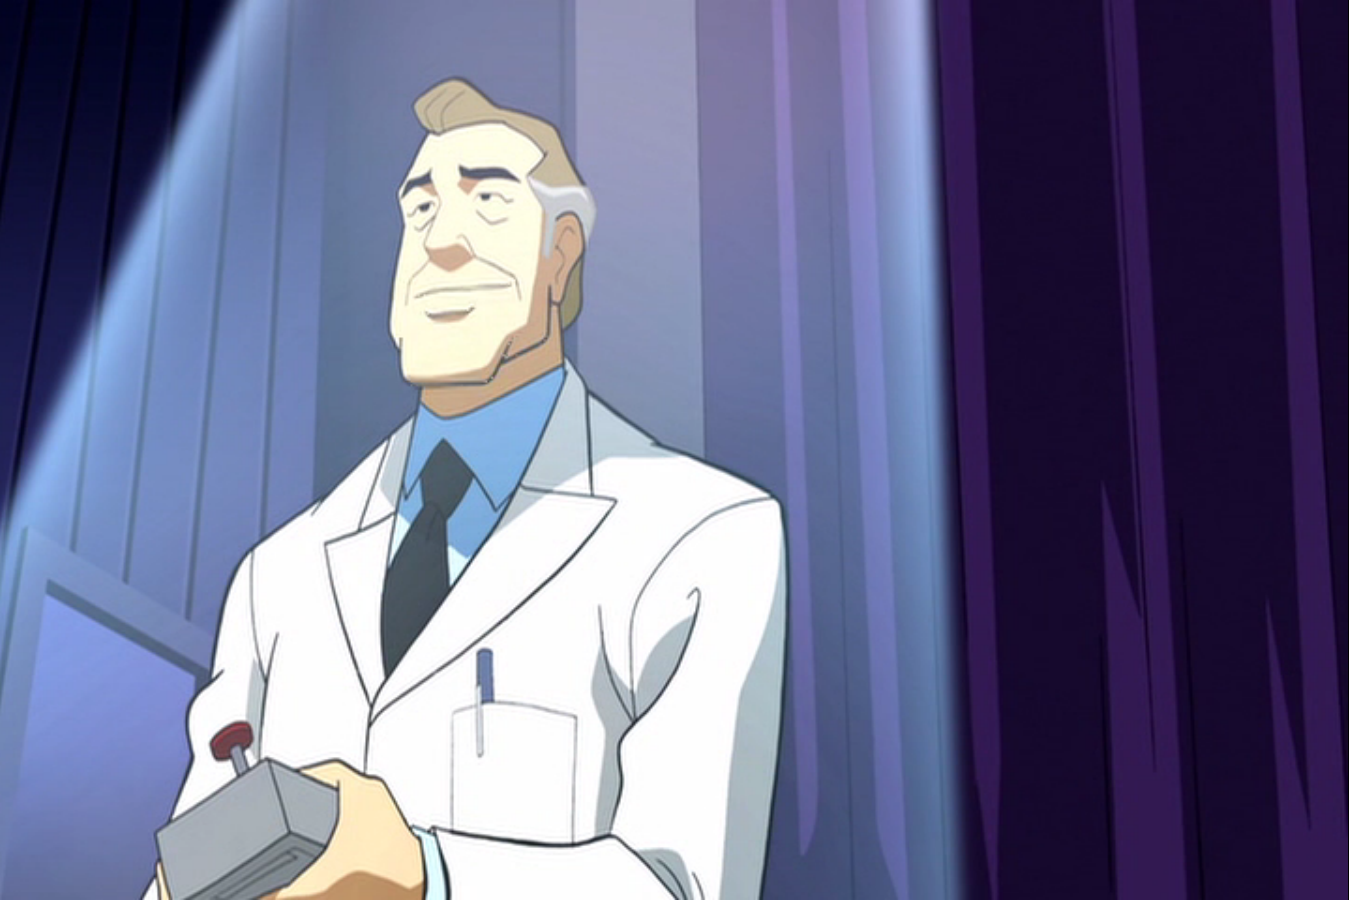 File:Dr. Ned Staples.png